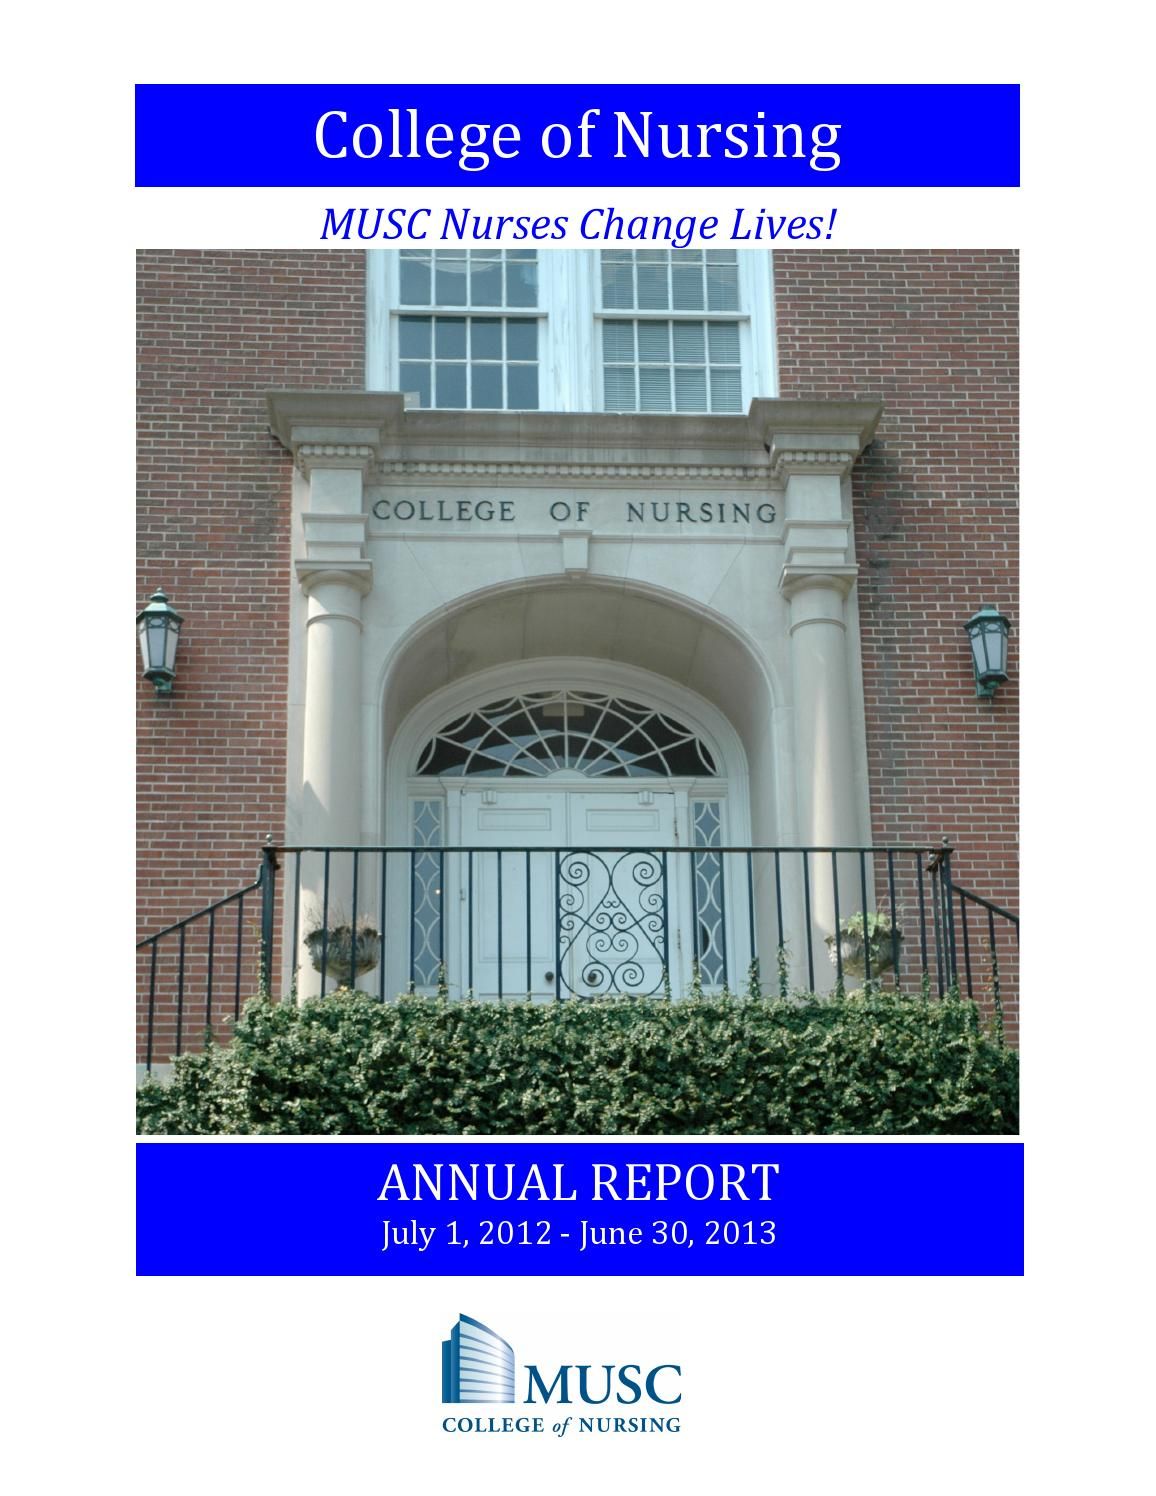 MUSC CON Annual Report 2012-2013 by MUSC College of Nursing